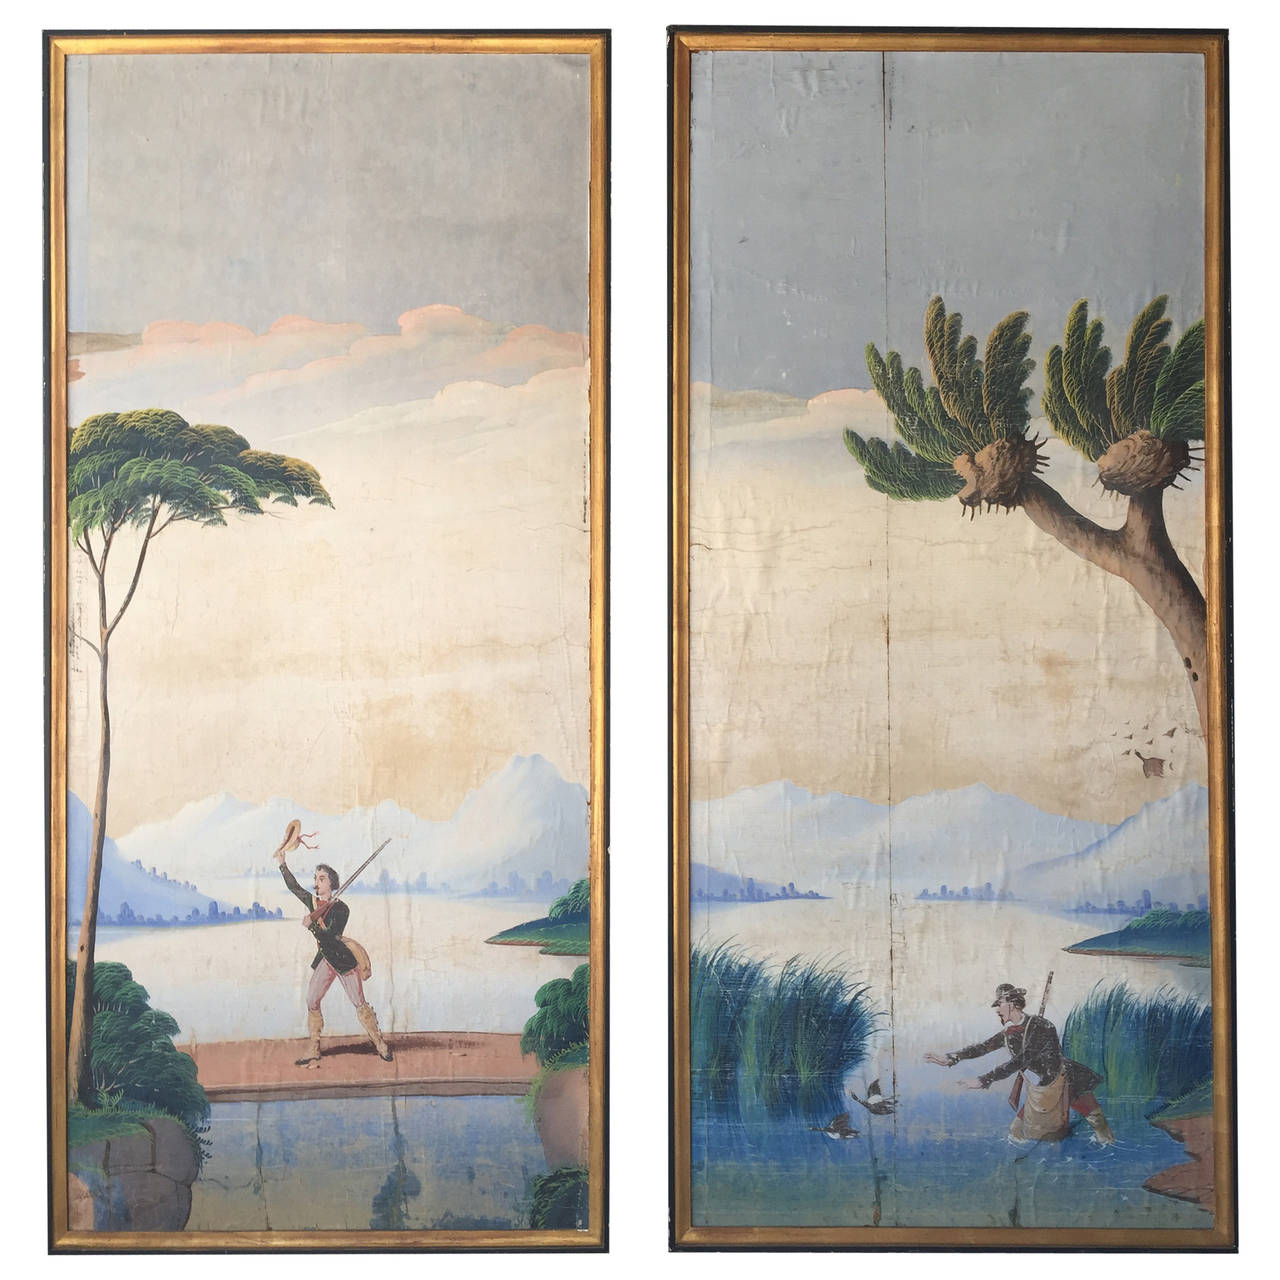 Pair of 1830s Hand Painted Italian or French Scenic Wallpaper Panels 1280x1280